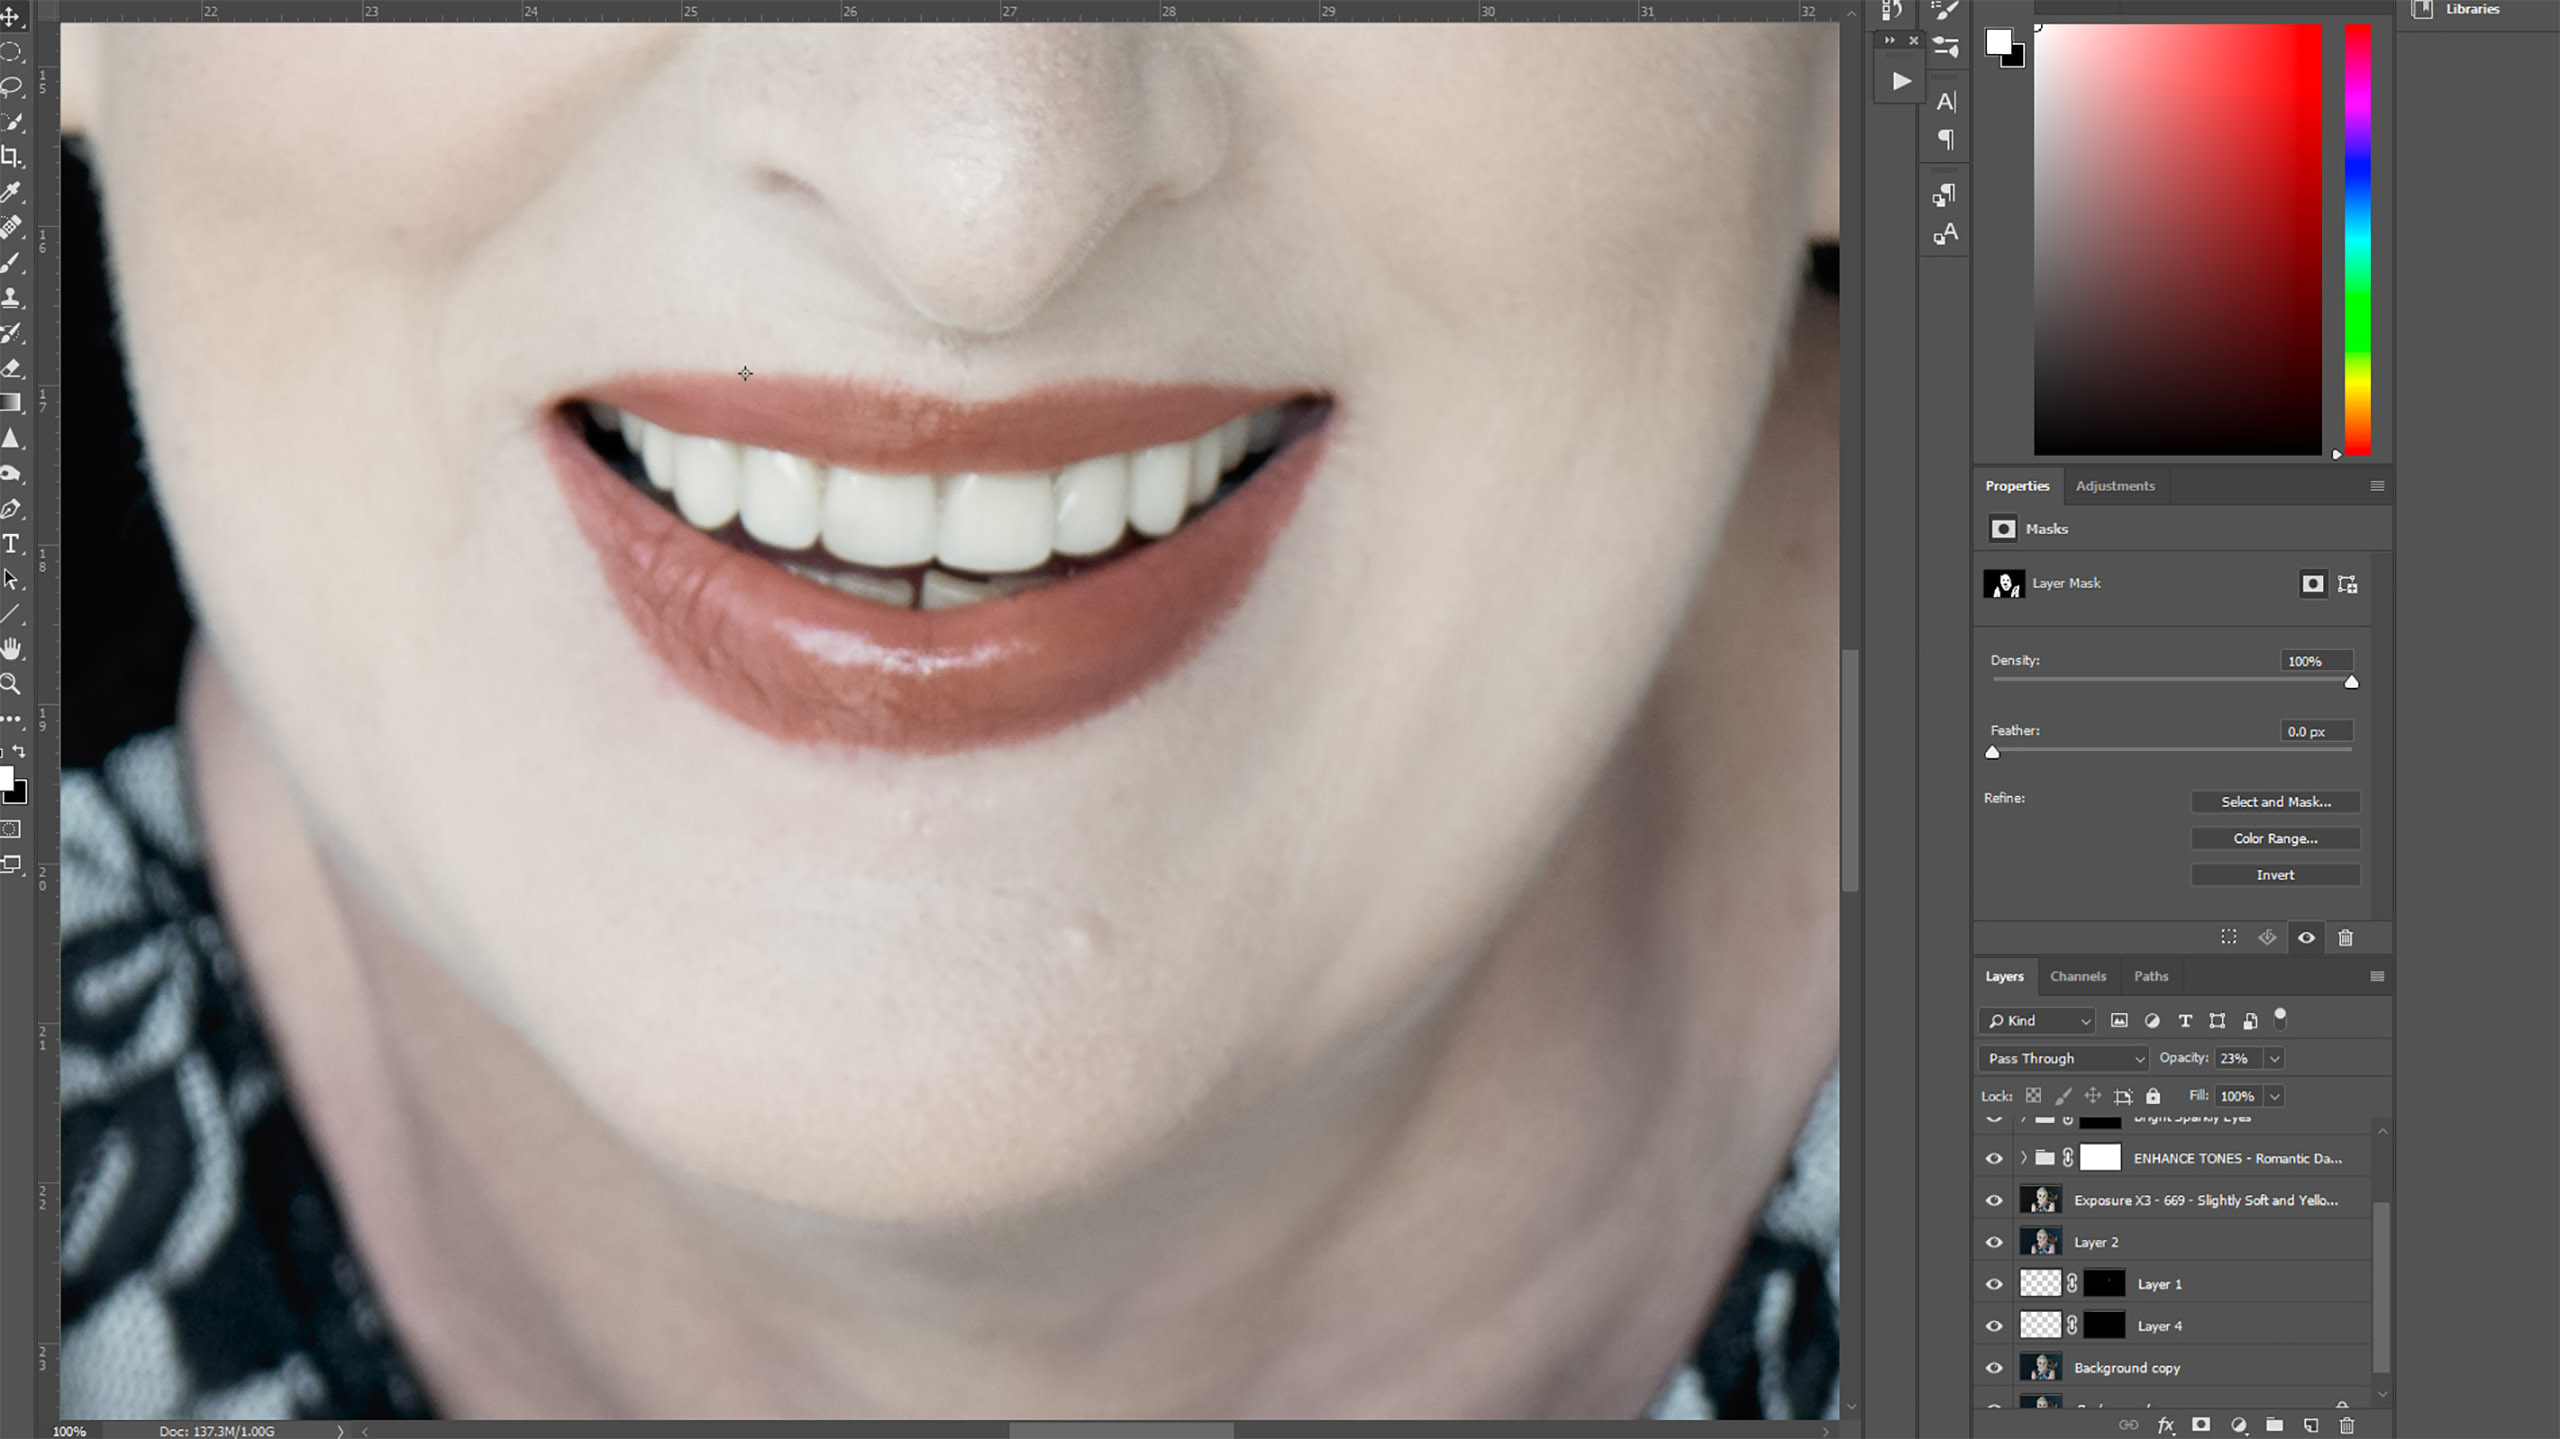 How to fix broken or missing teeth in Photoshop